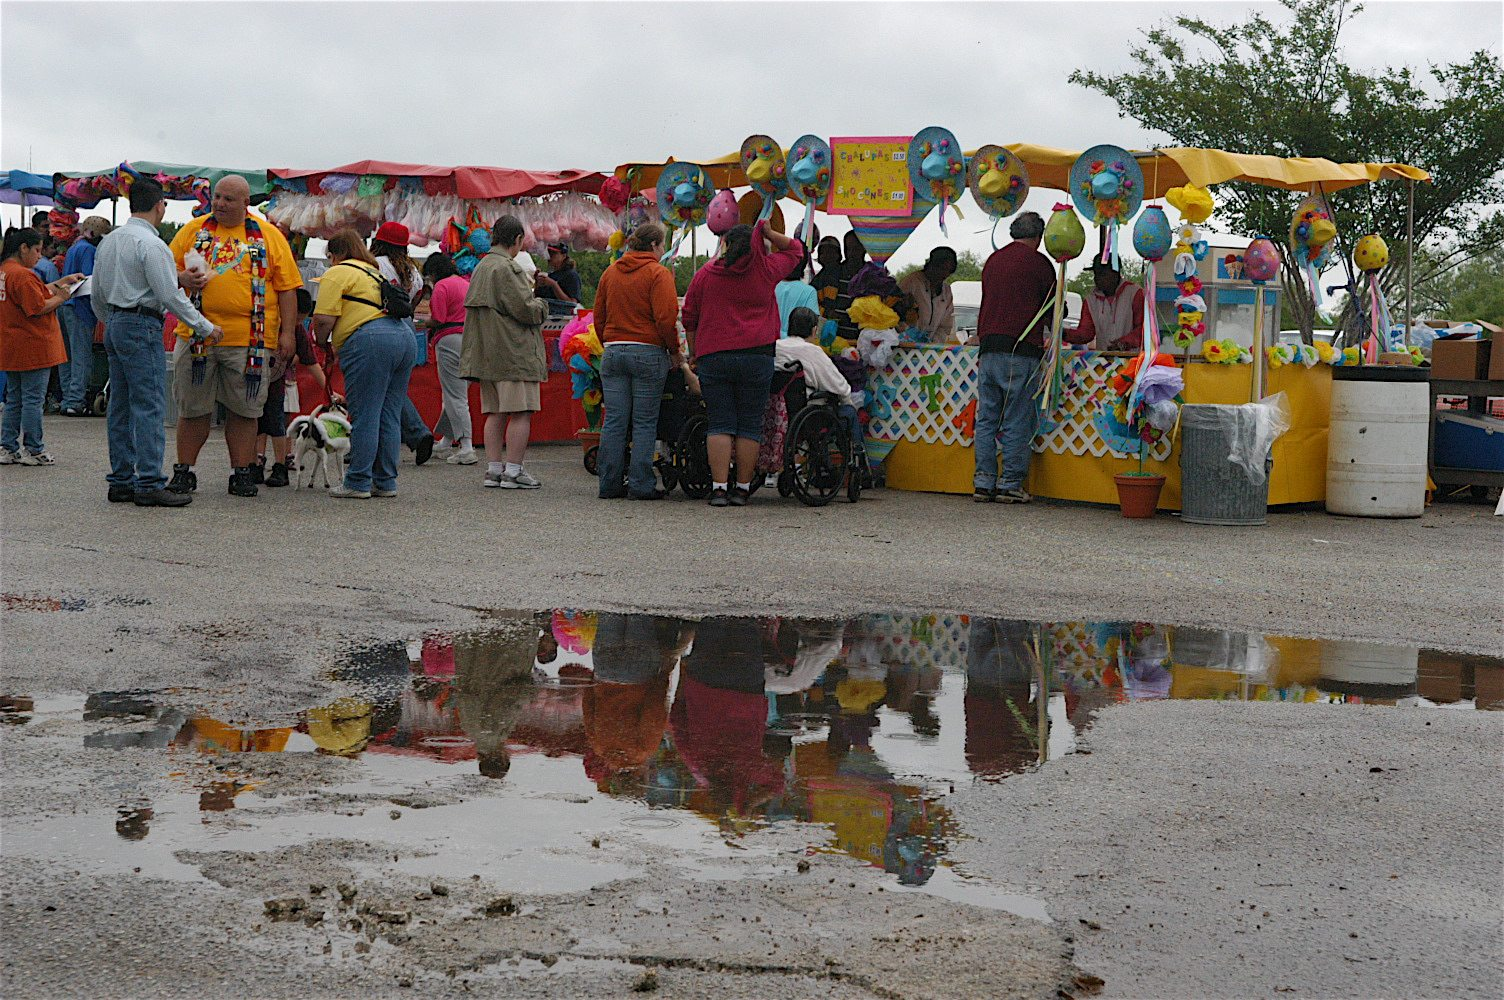 Group of people in line at a vendor at a small festival with a puddle in the foreground